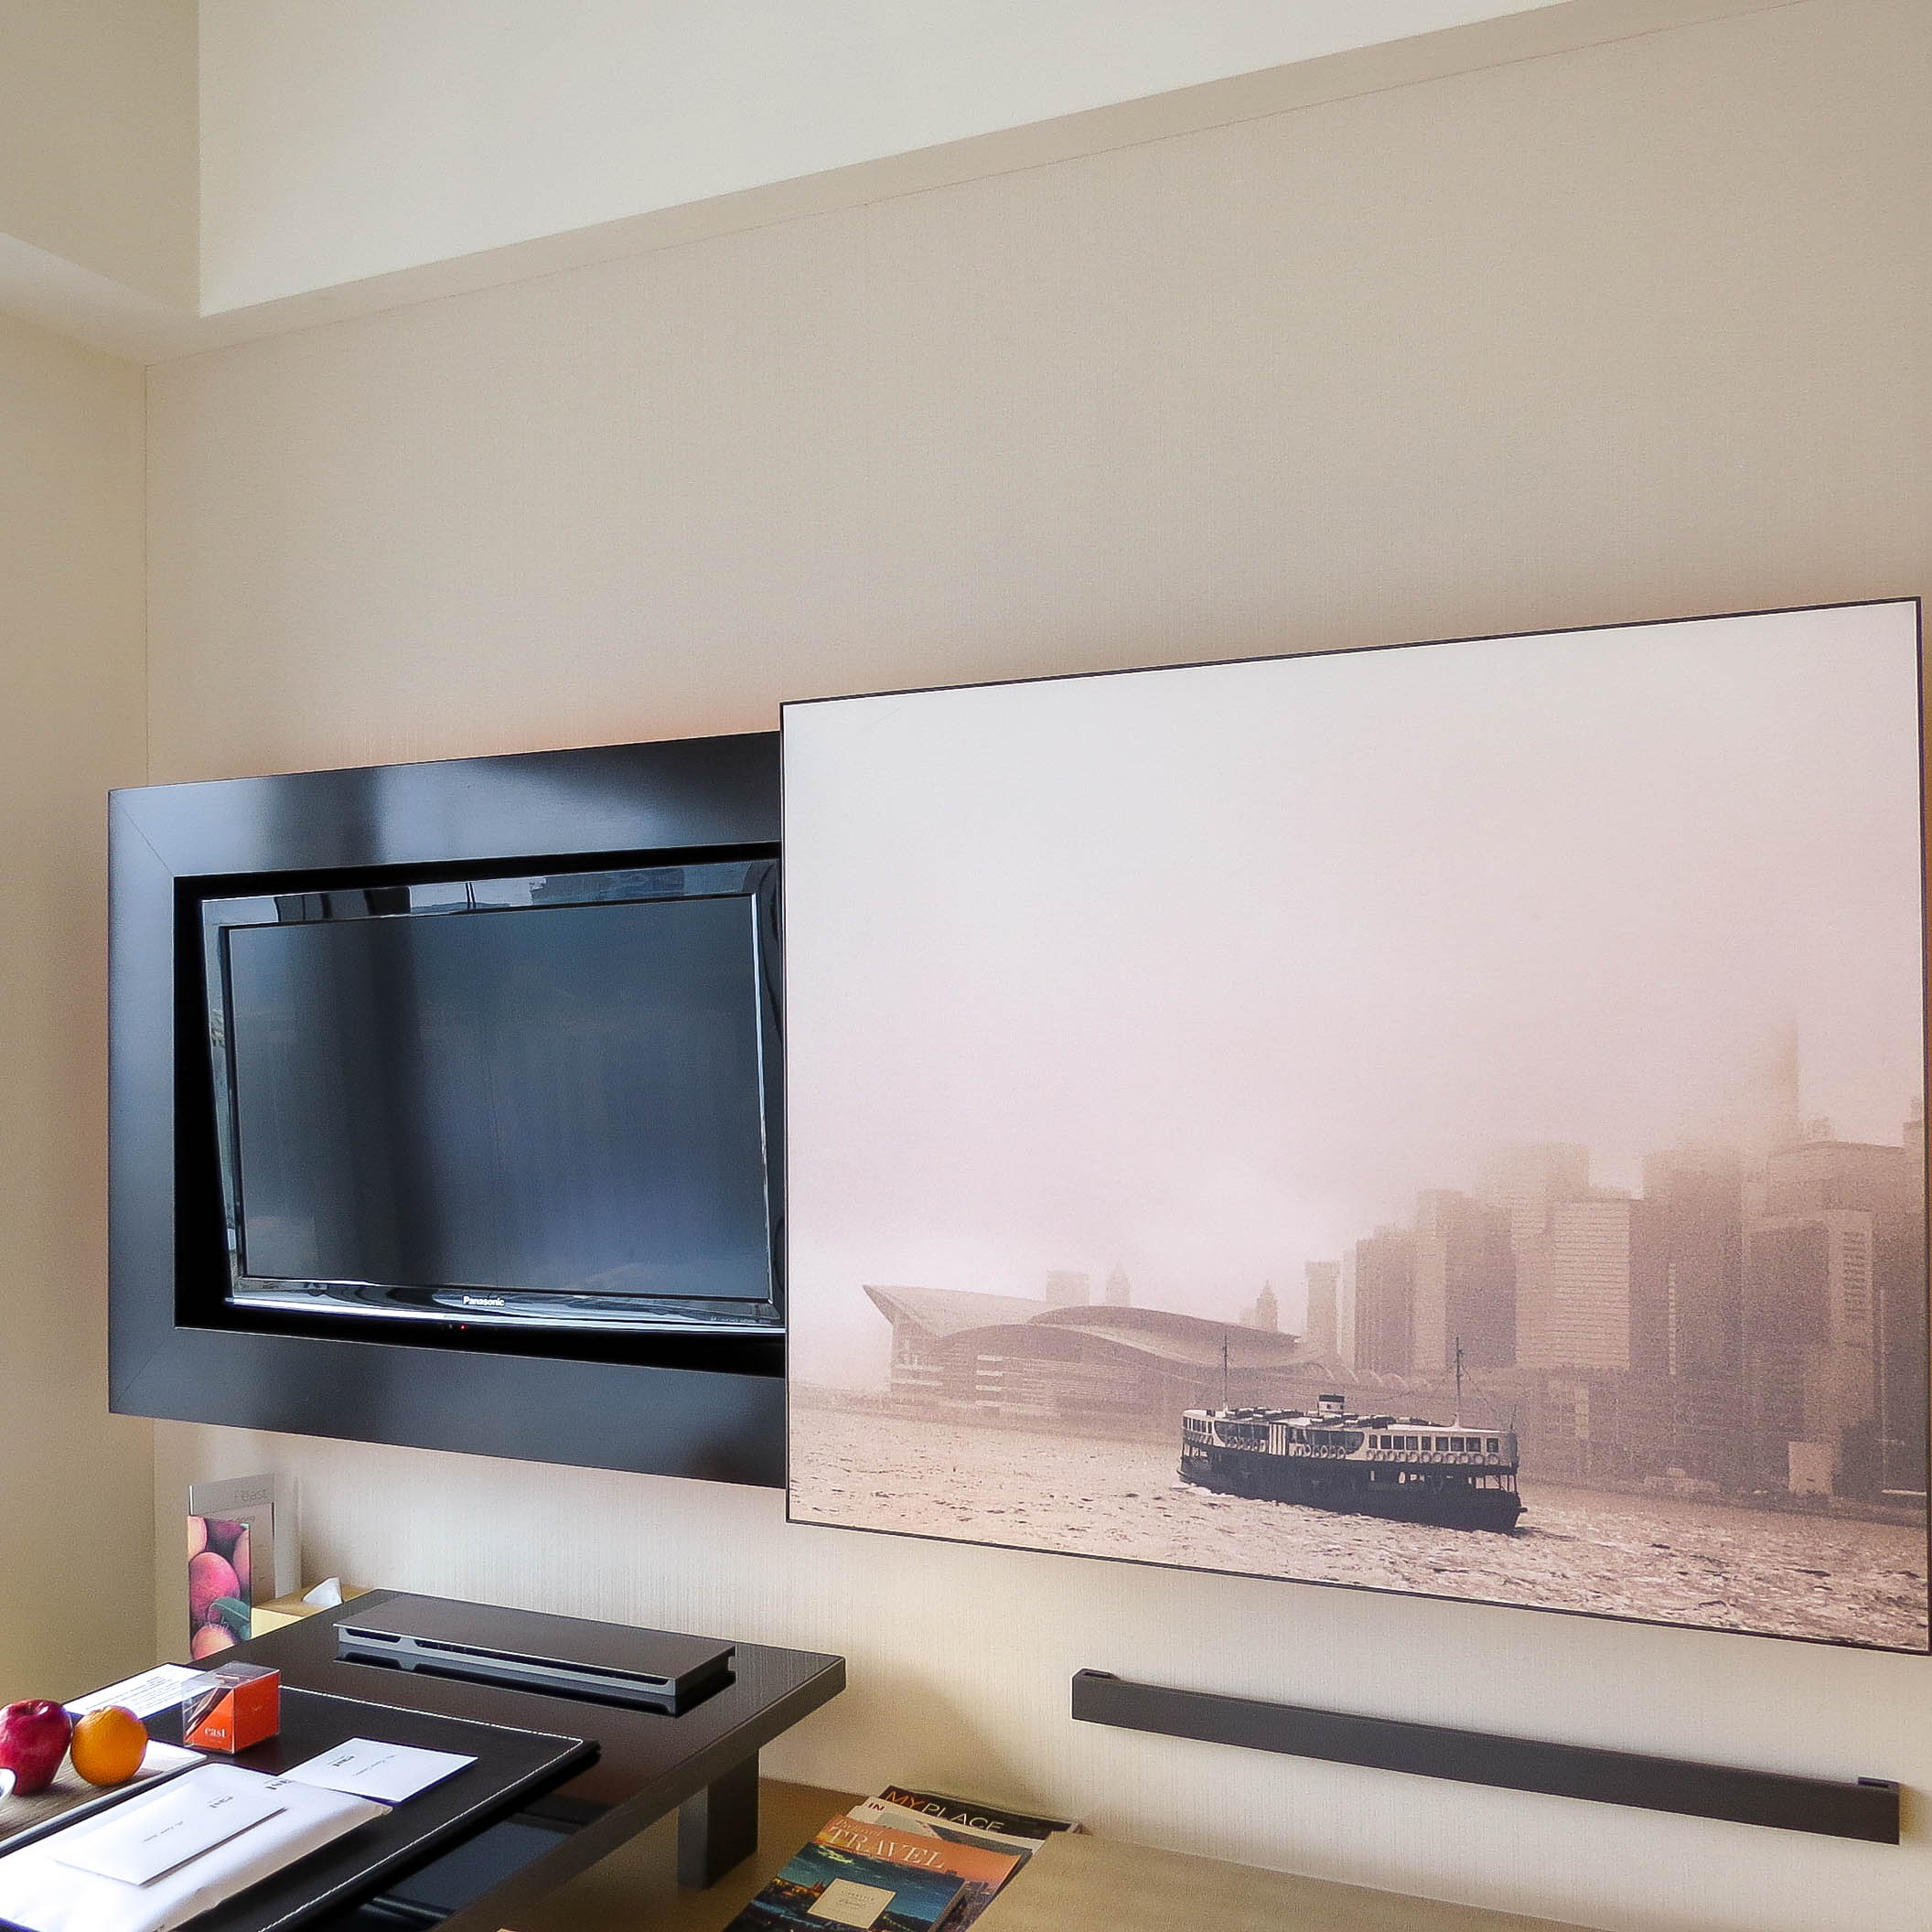 Business hotel in hong kong east hotel - Lifestyle Enthusiast East Hotel Hong Kong Desk Tv